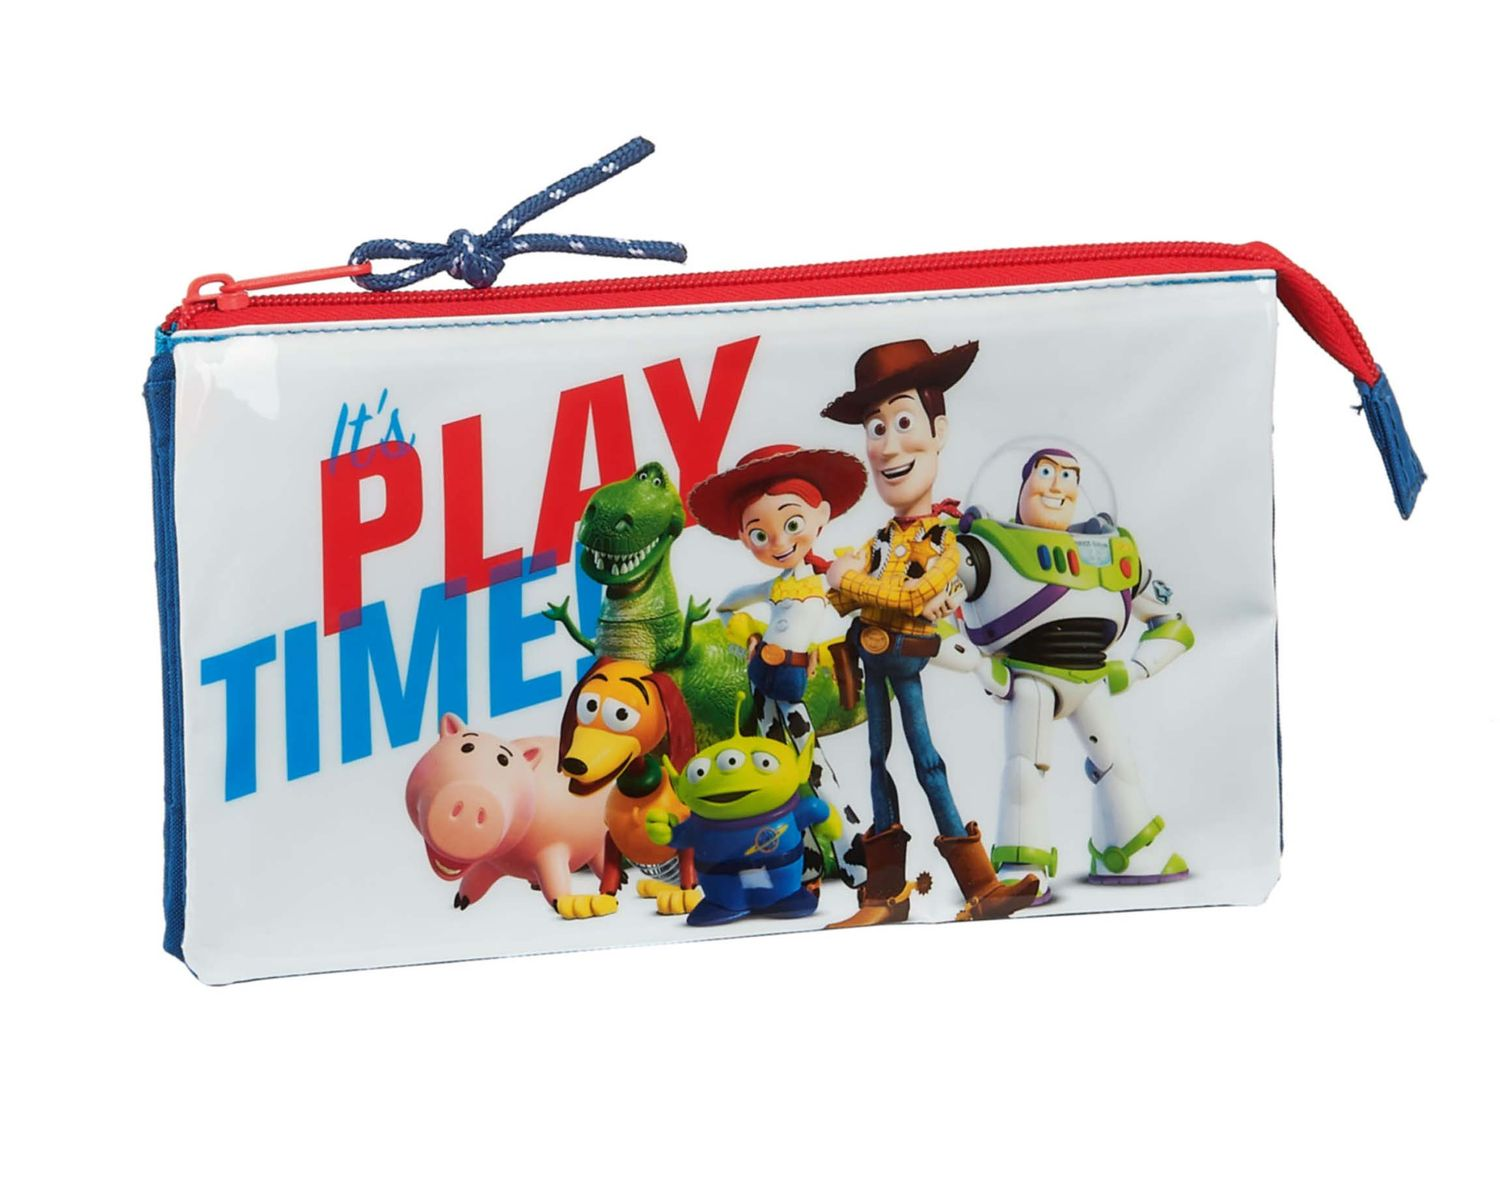 TOY STORY 4 PLAY TIME Triple Pencil Case – image 1